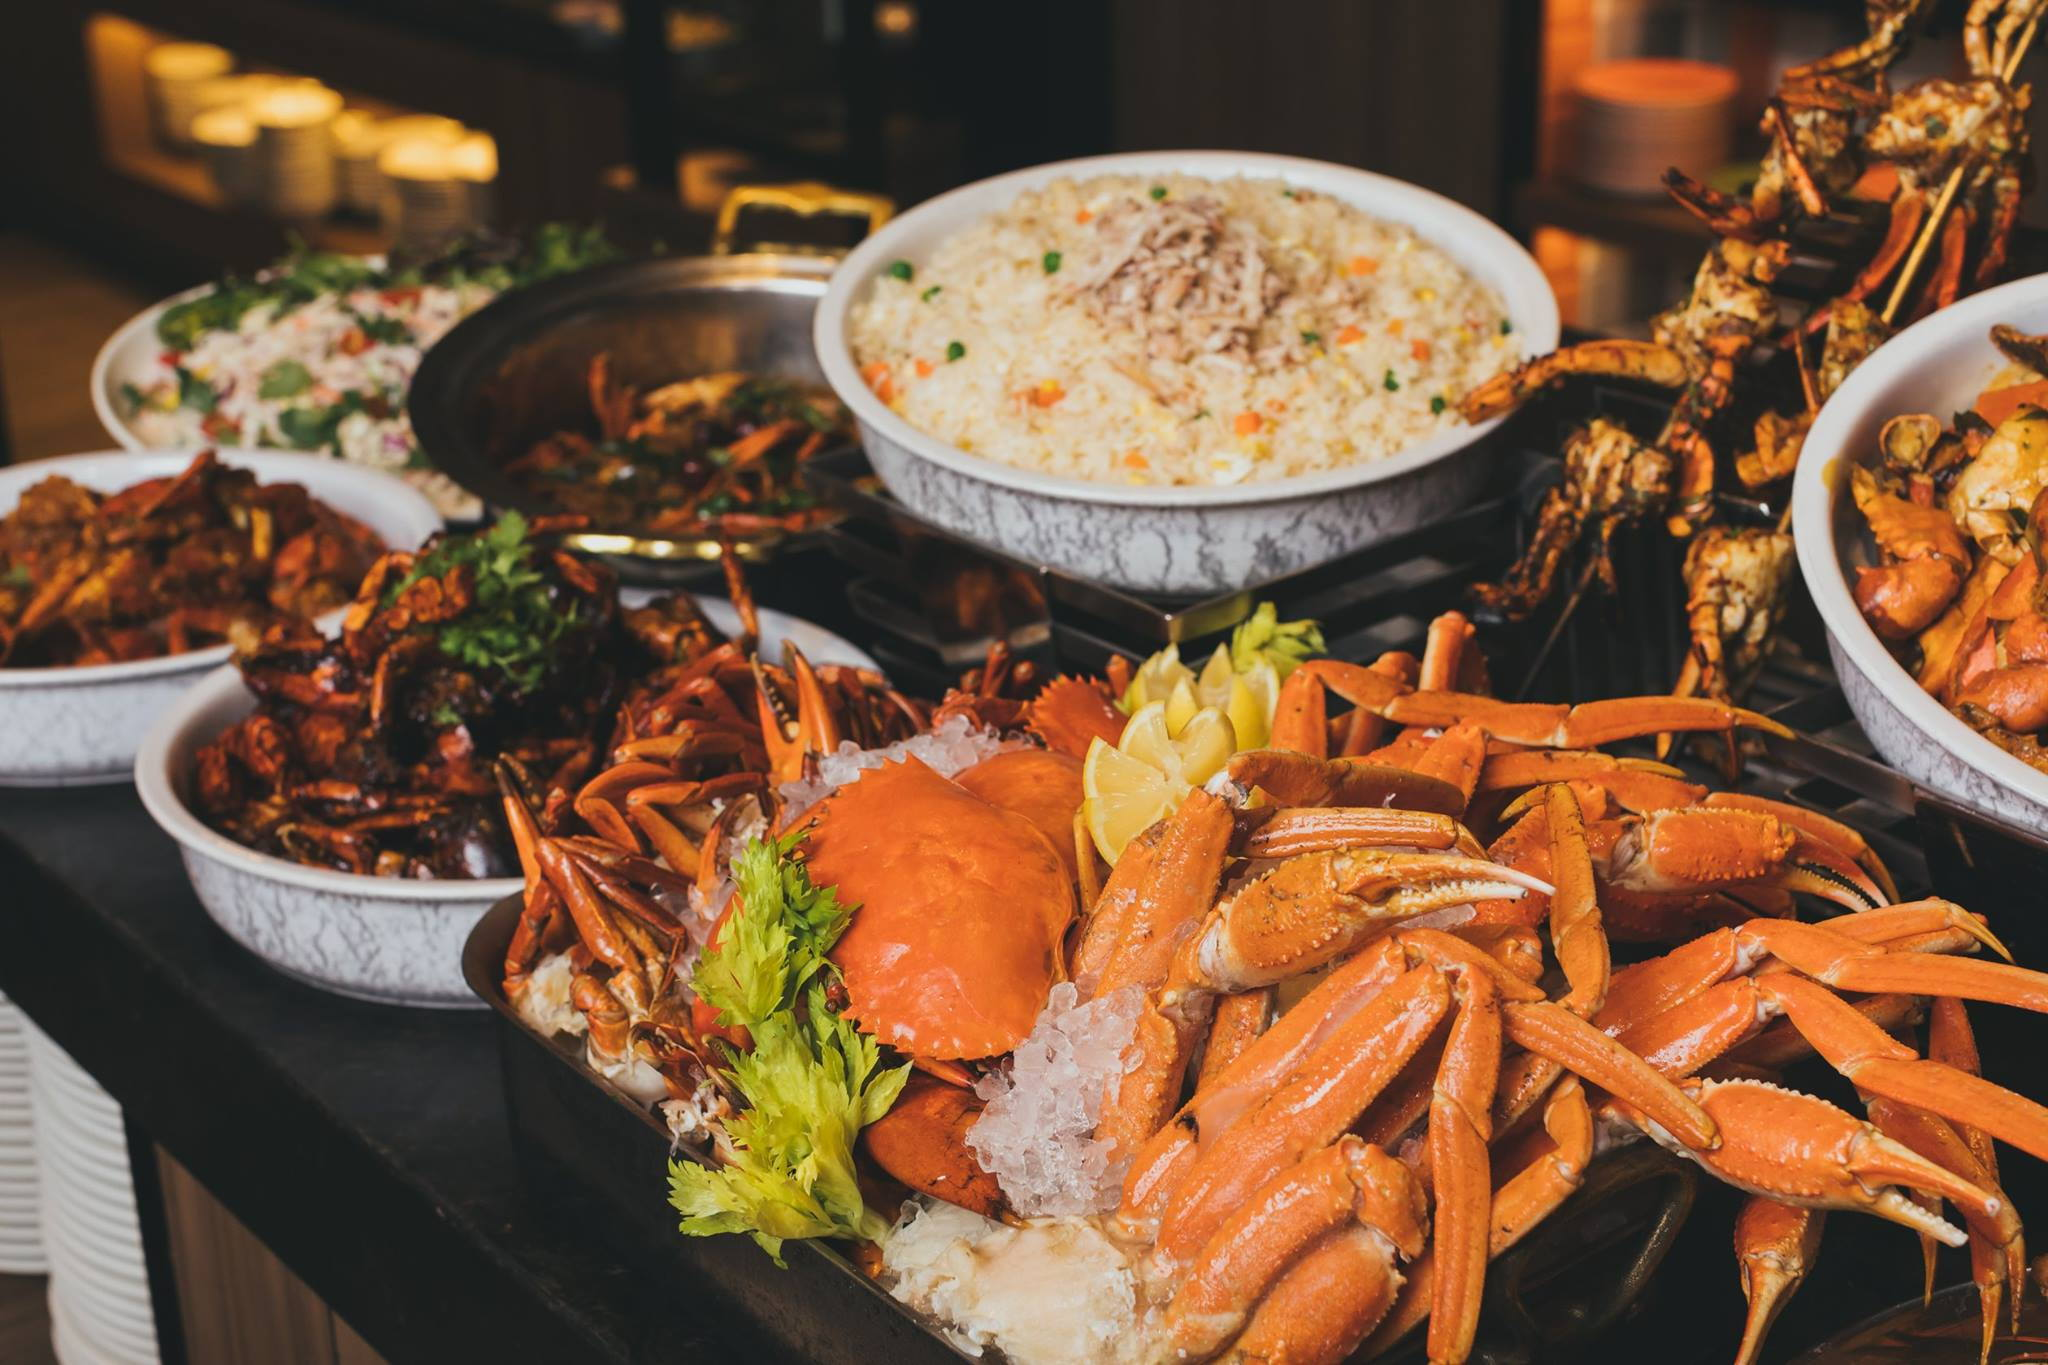 10 Atas Hotel Seafood Buffet Lobangs That Let You Feast At Up To 50% Off - EatBook.sg